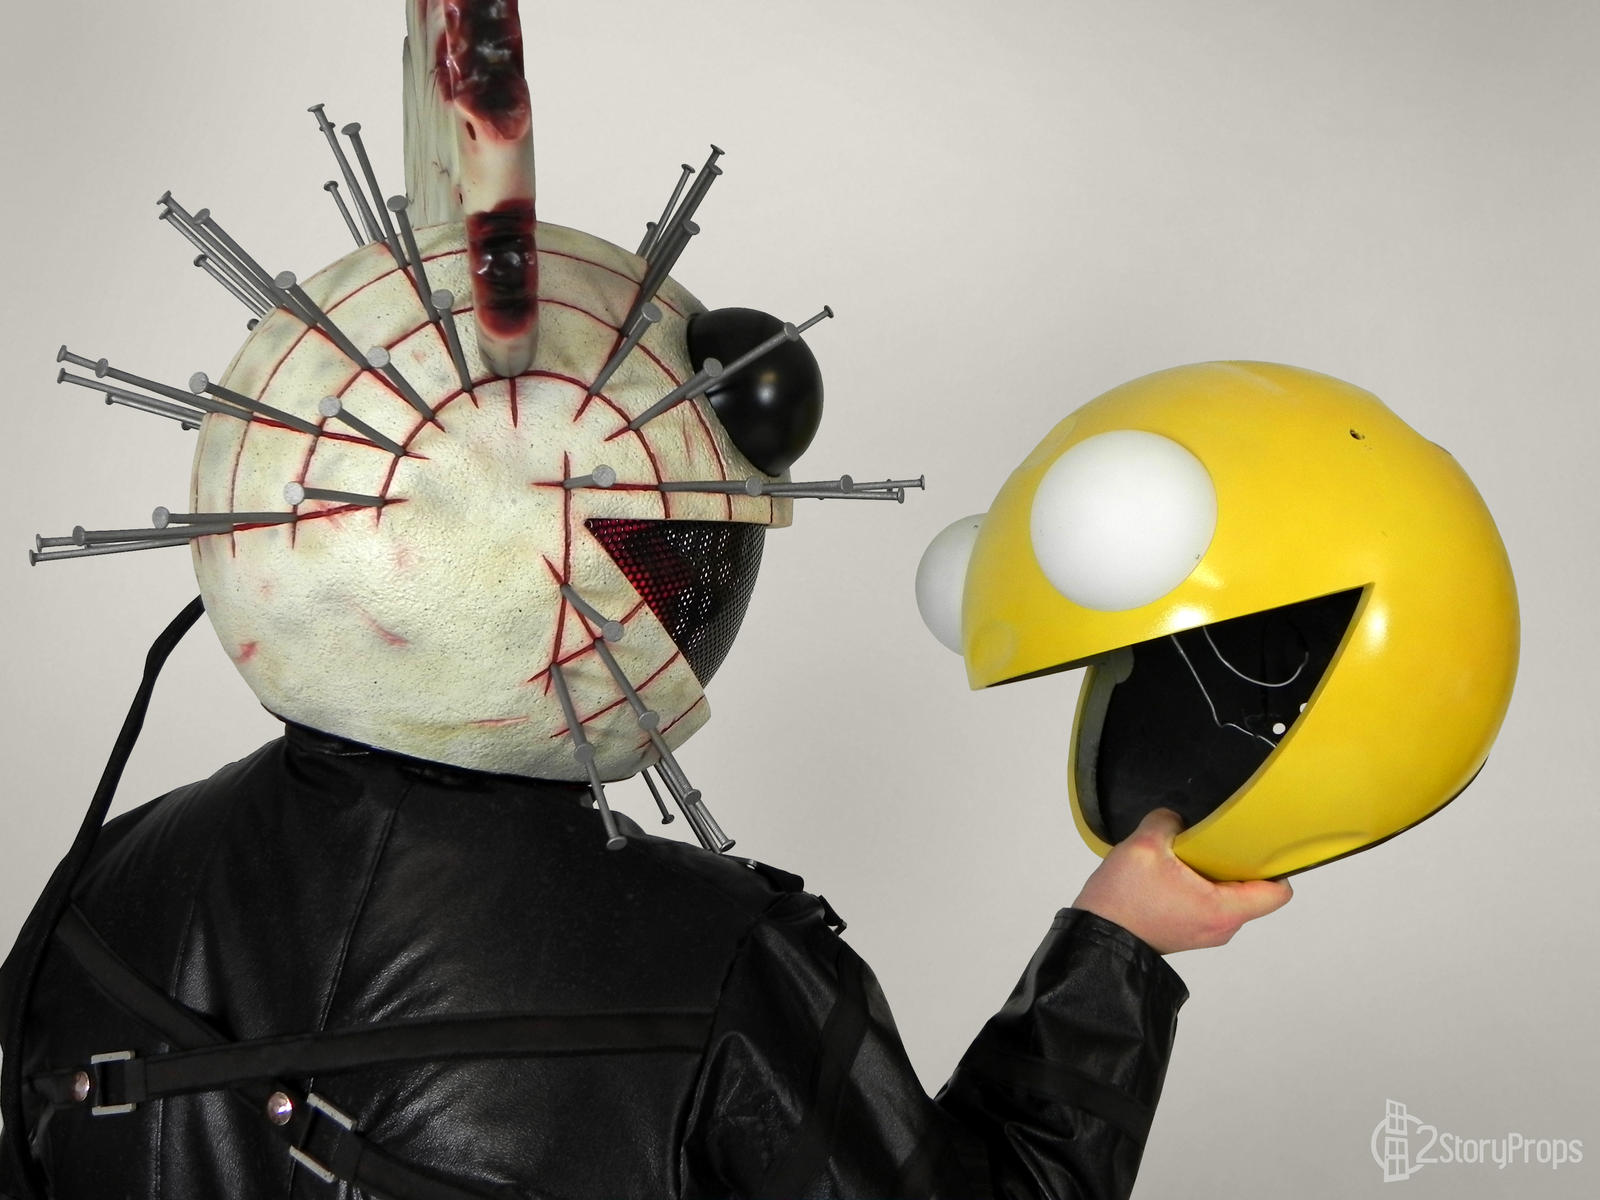 deadmau5 pinhead halloween 2014 by doublezerofx deadmau5 pinhead halloween 2014 by doublezerofx - Deadmau5 Halloween Head